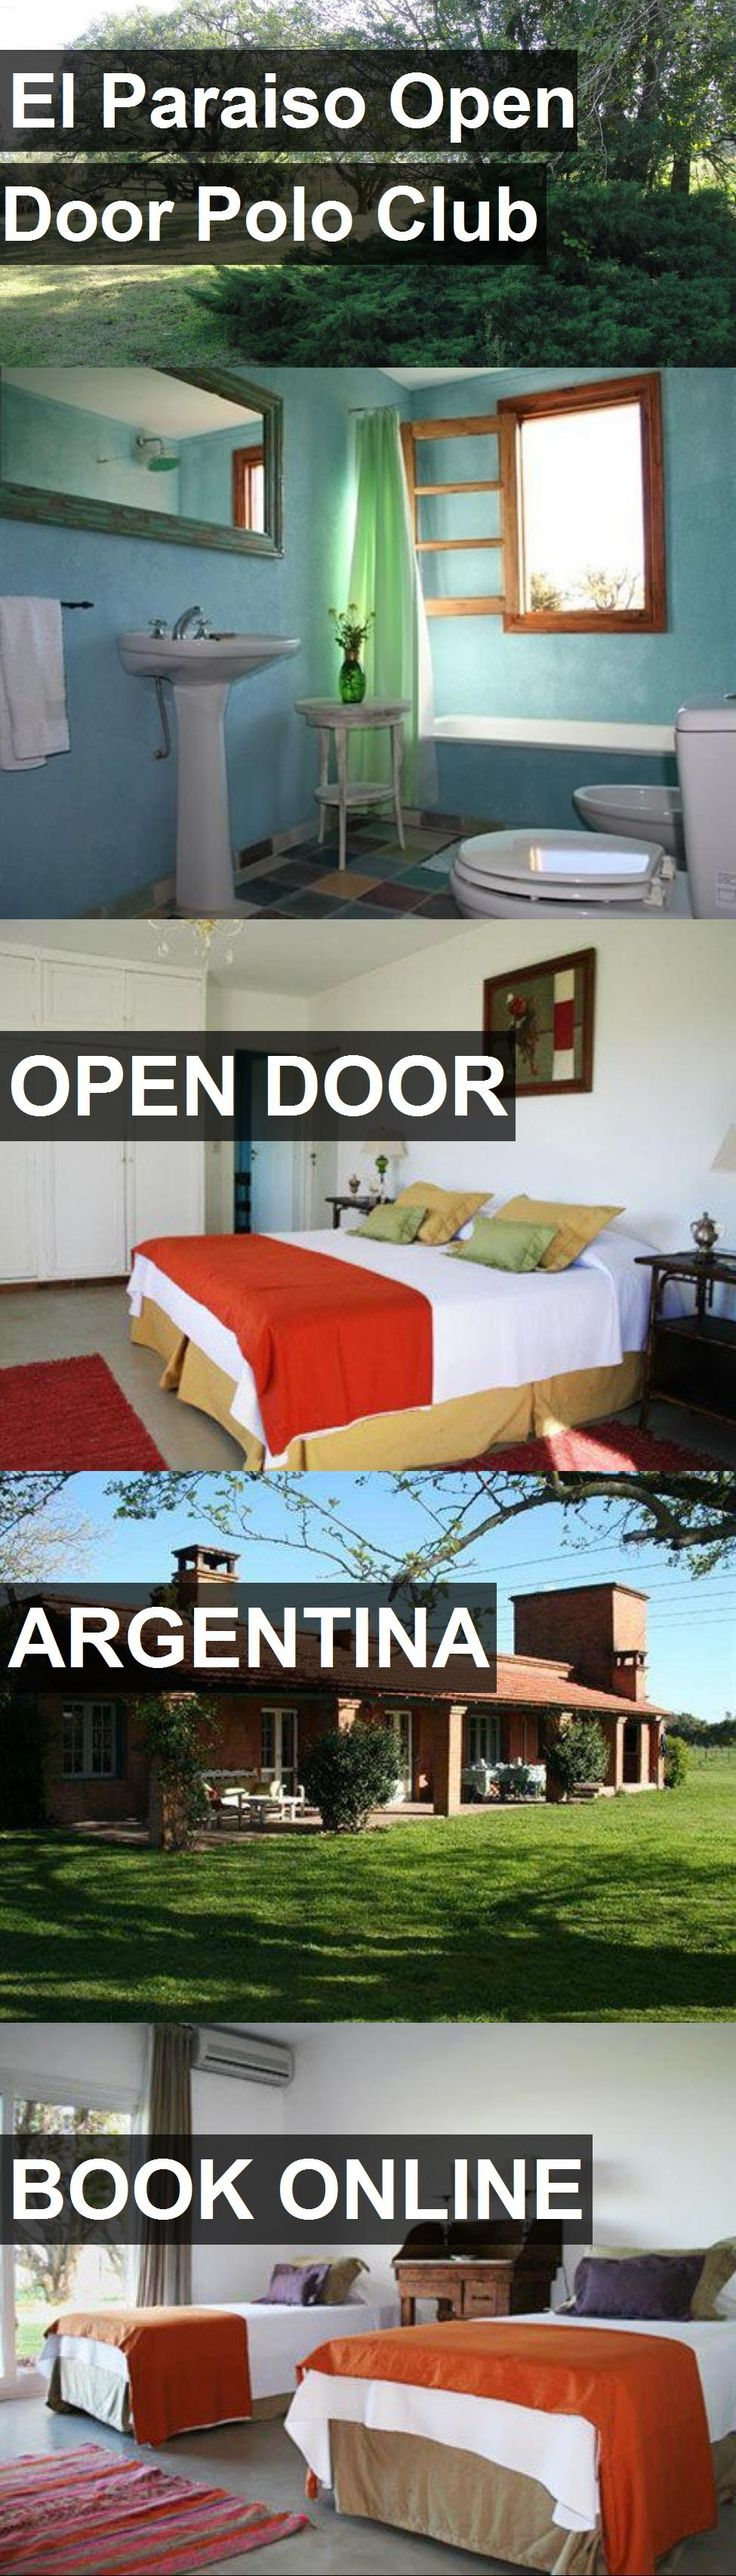 Hotel El Paraiso Open Door Polo Club in Open Door, Argentina. For more information, photos, reviews and best prices please follow the link. #Argentina #OpenDoor #travel #vacation #hotel